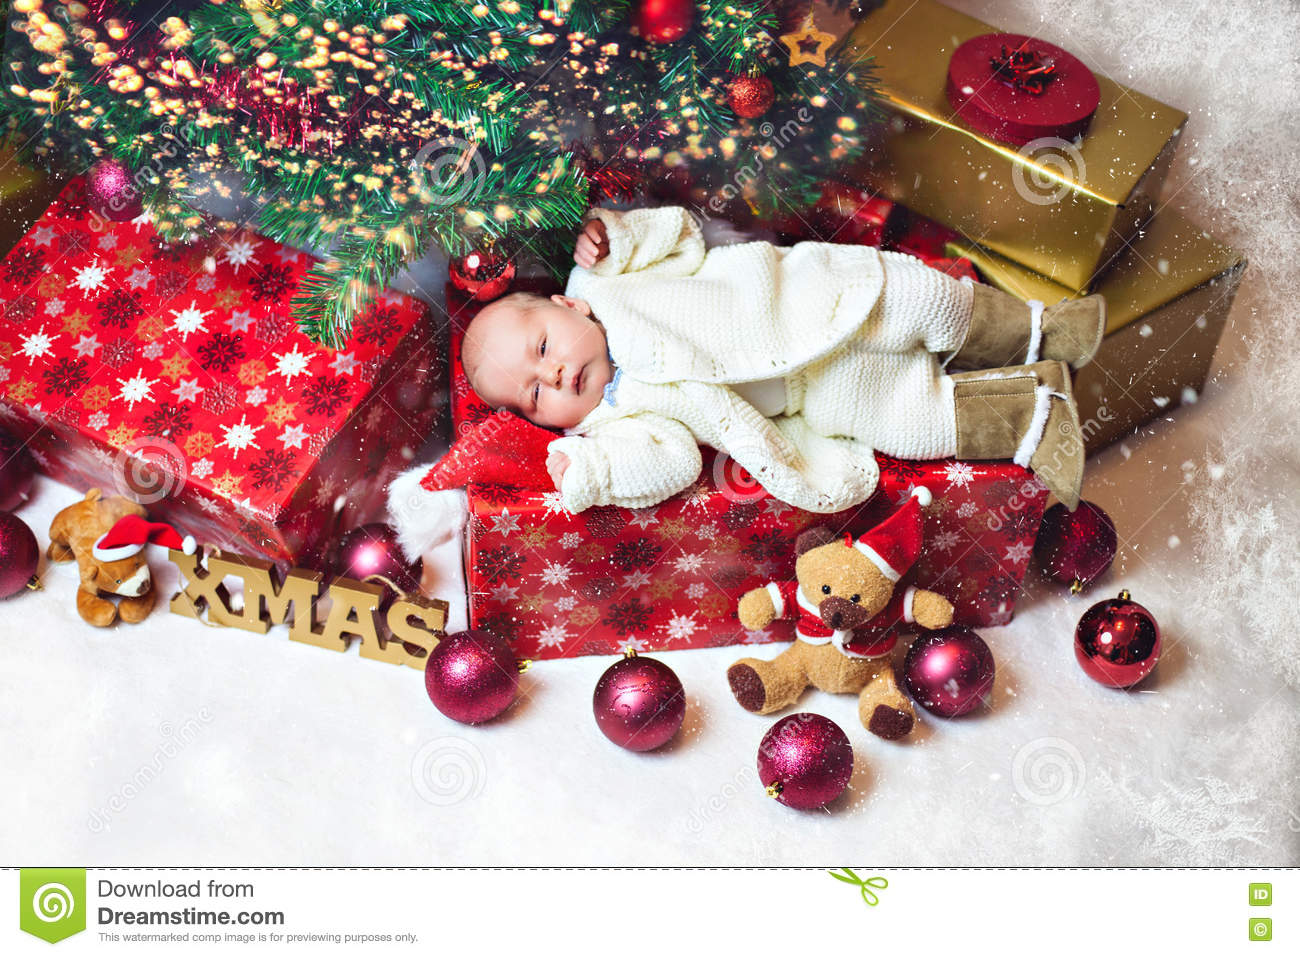 Tiny Cute Baby Lying On A Christmas Gift Box Stock Image - Image of ...